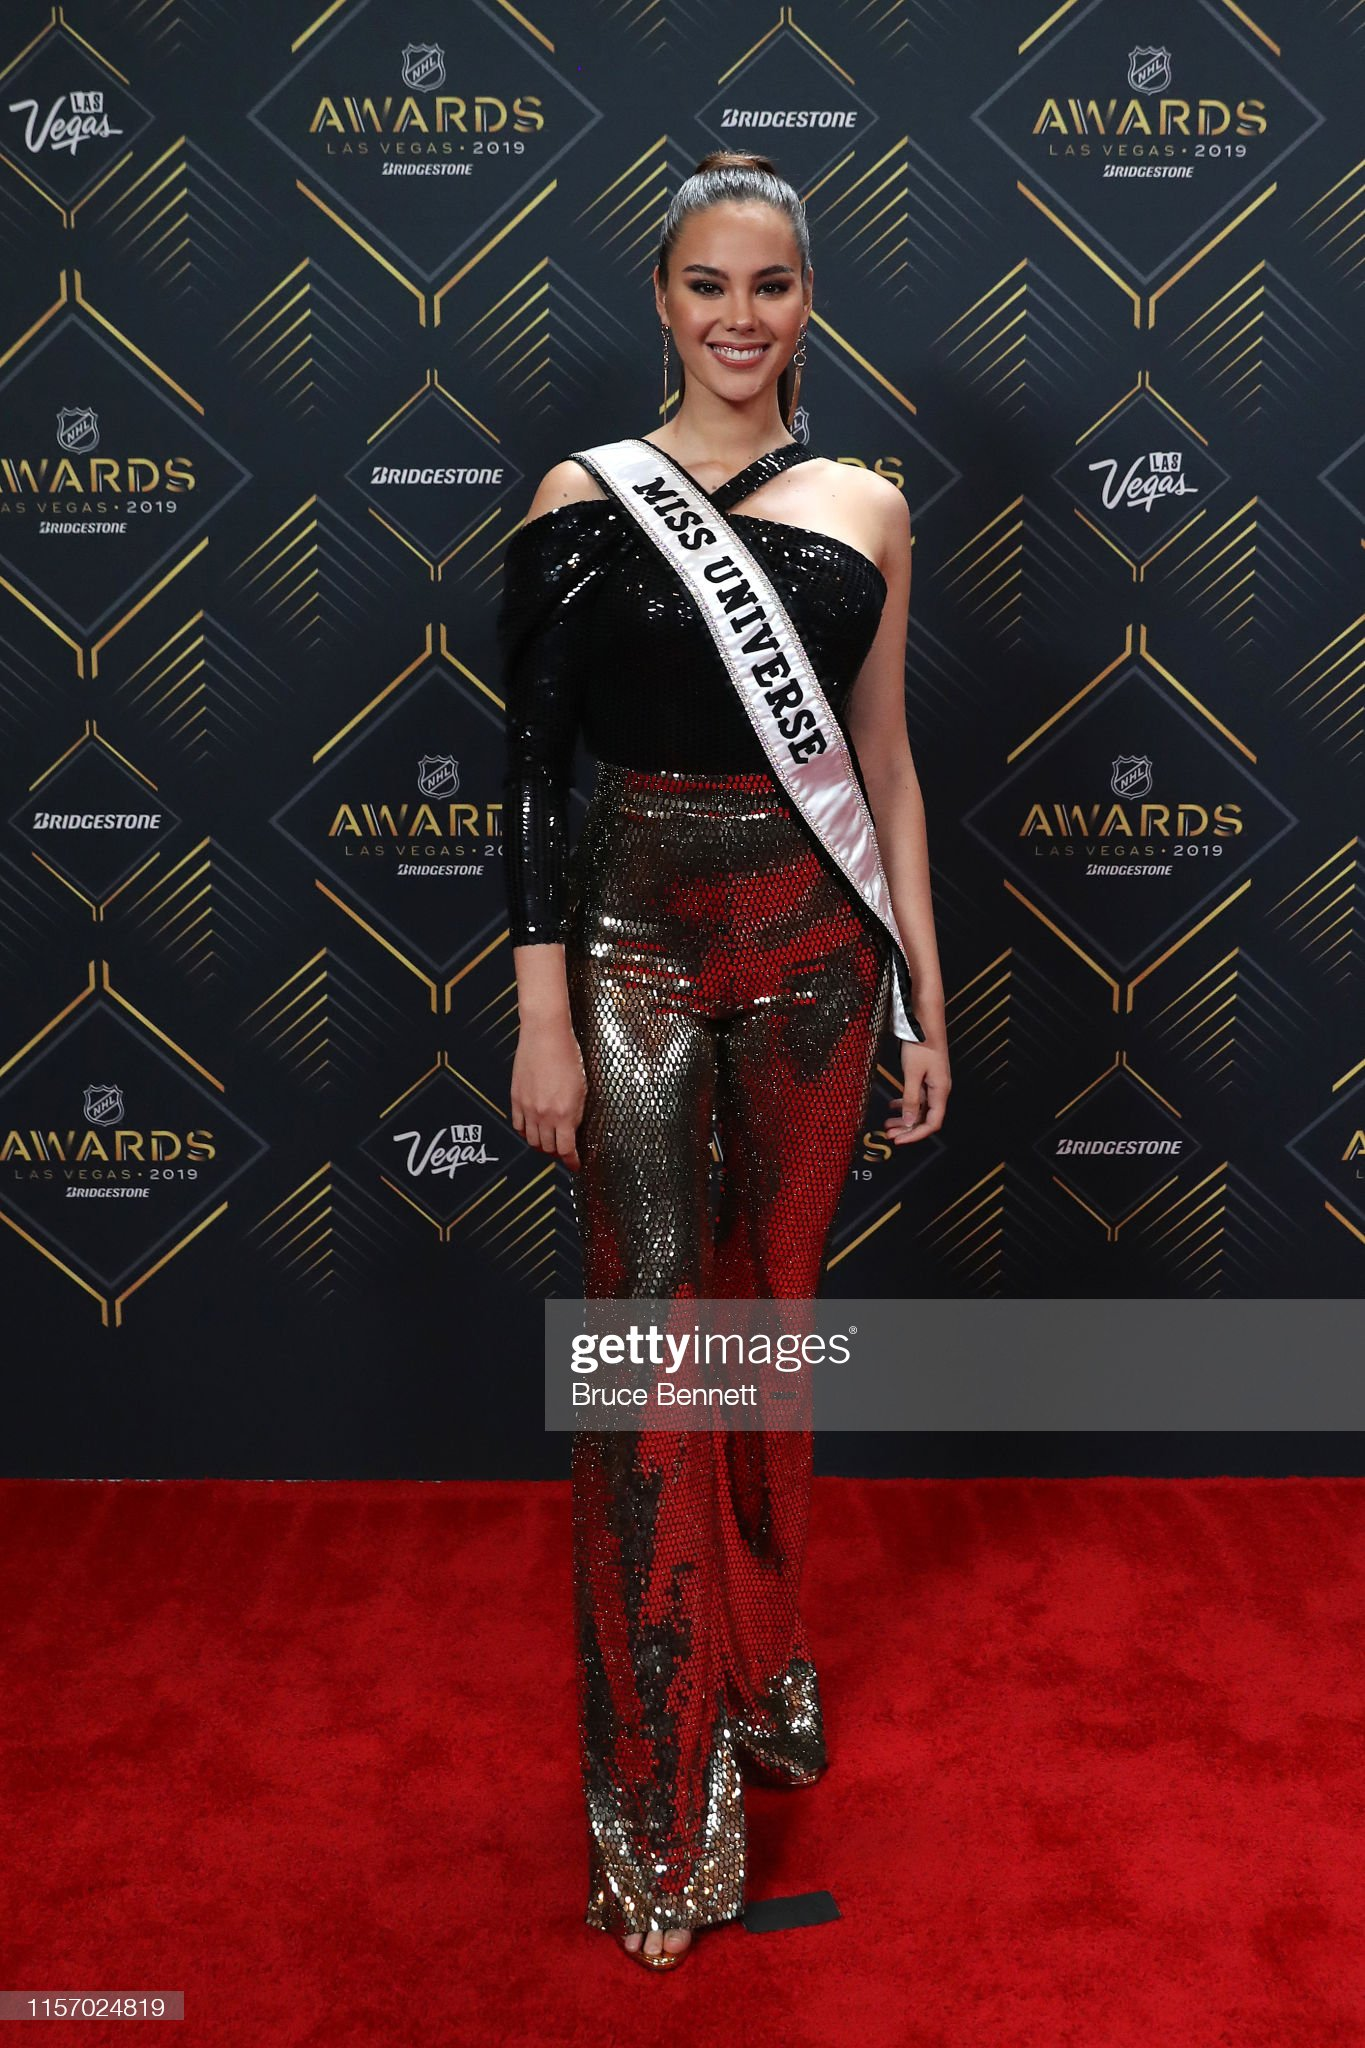 2018 | MISS UNIVERSE | CATRIONA GRAY - Page 34 Miss-universe-2018-catriona-gray-arrives-at-the-2019-nhl-awards-at-picture-id1157024819?s=2048x2048